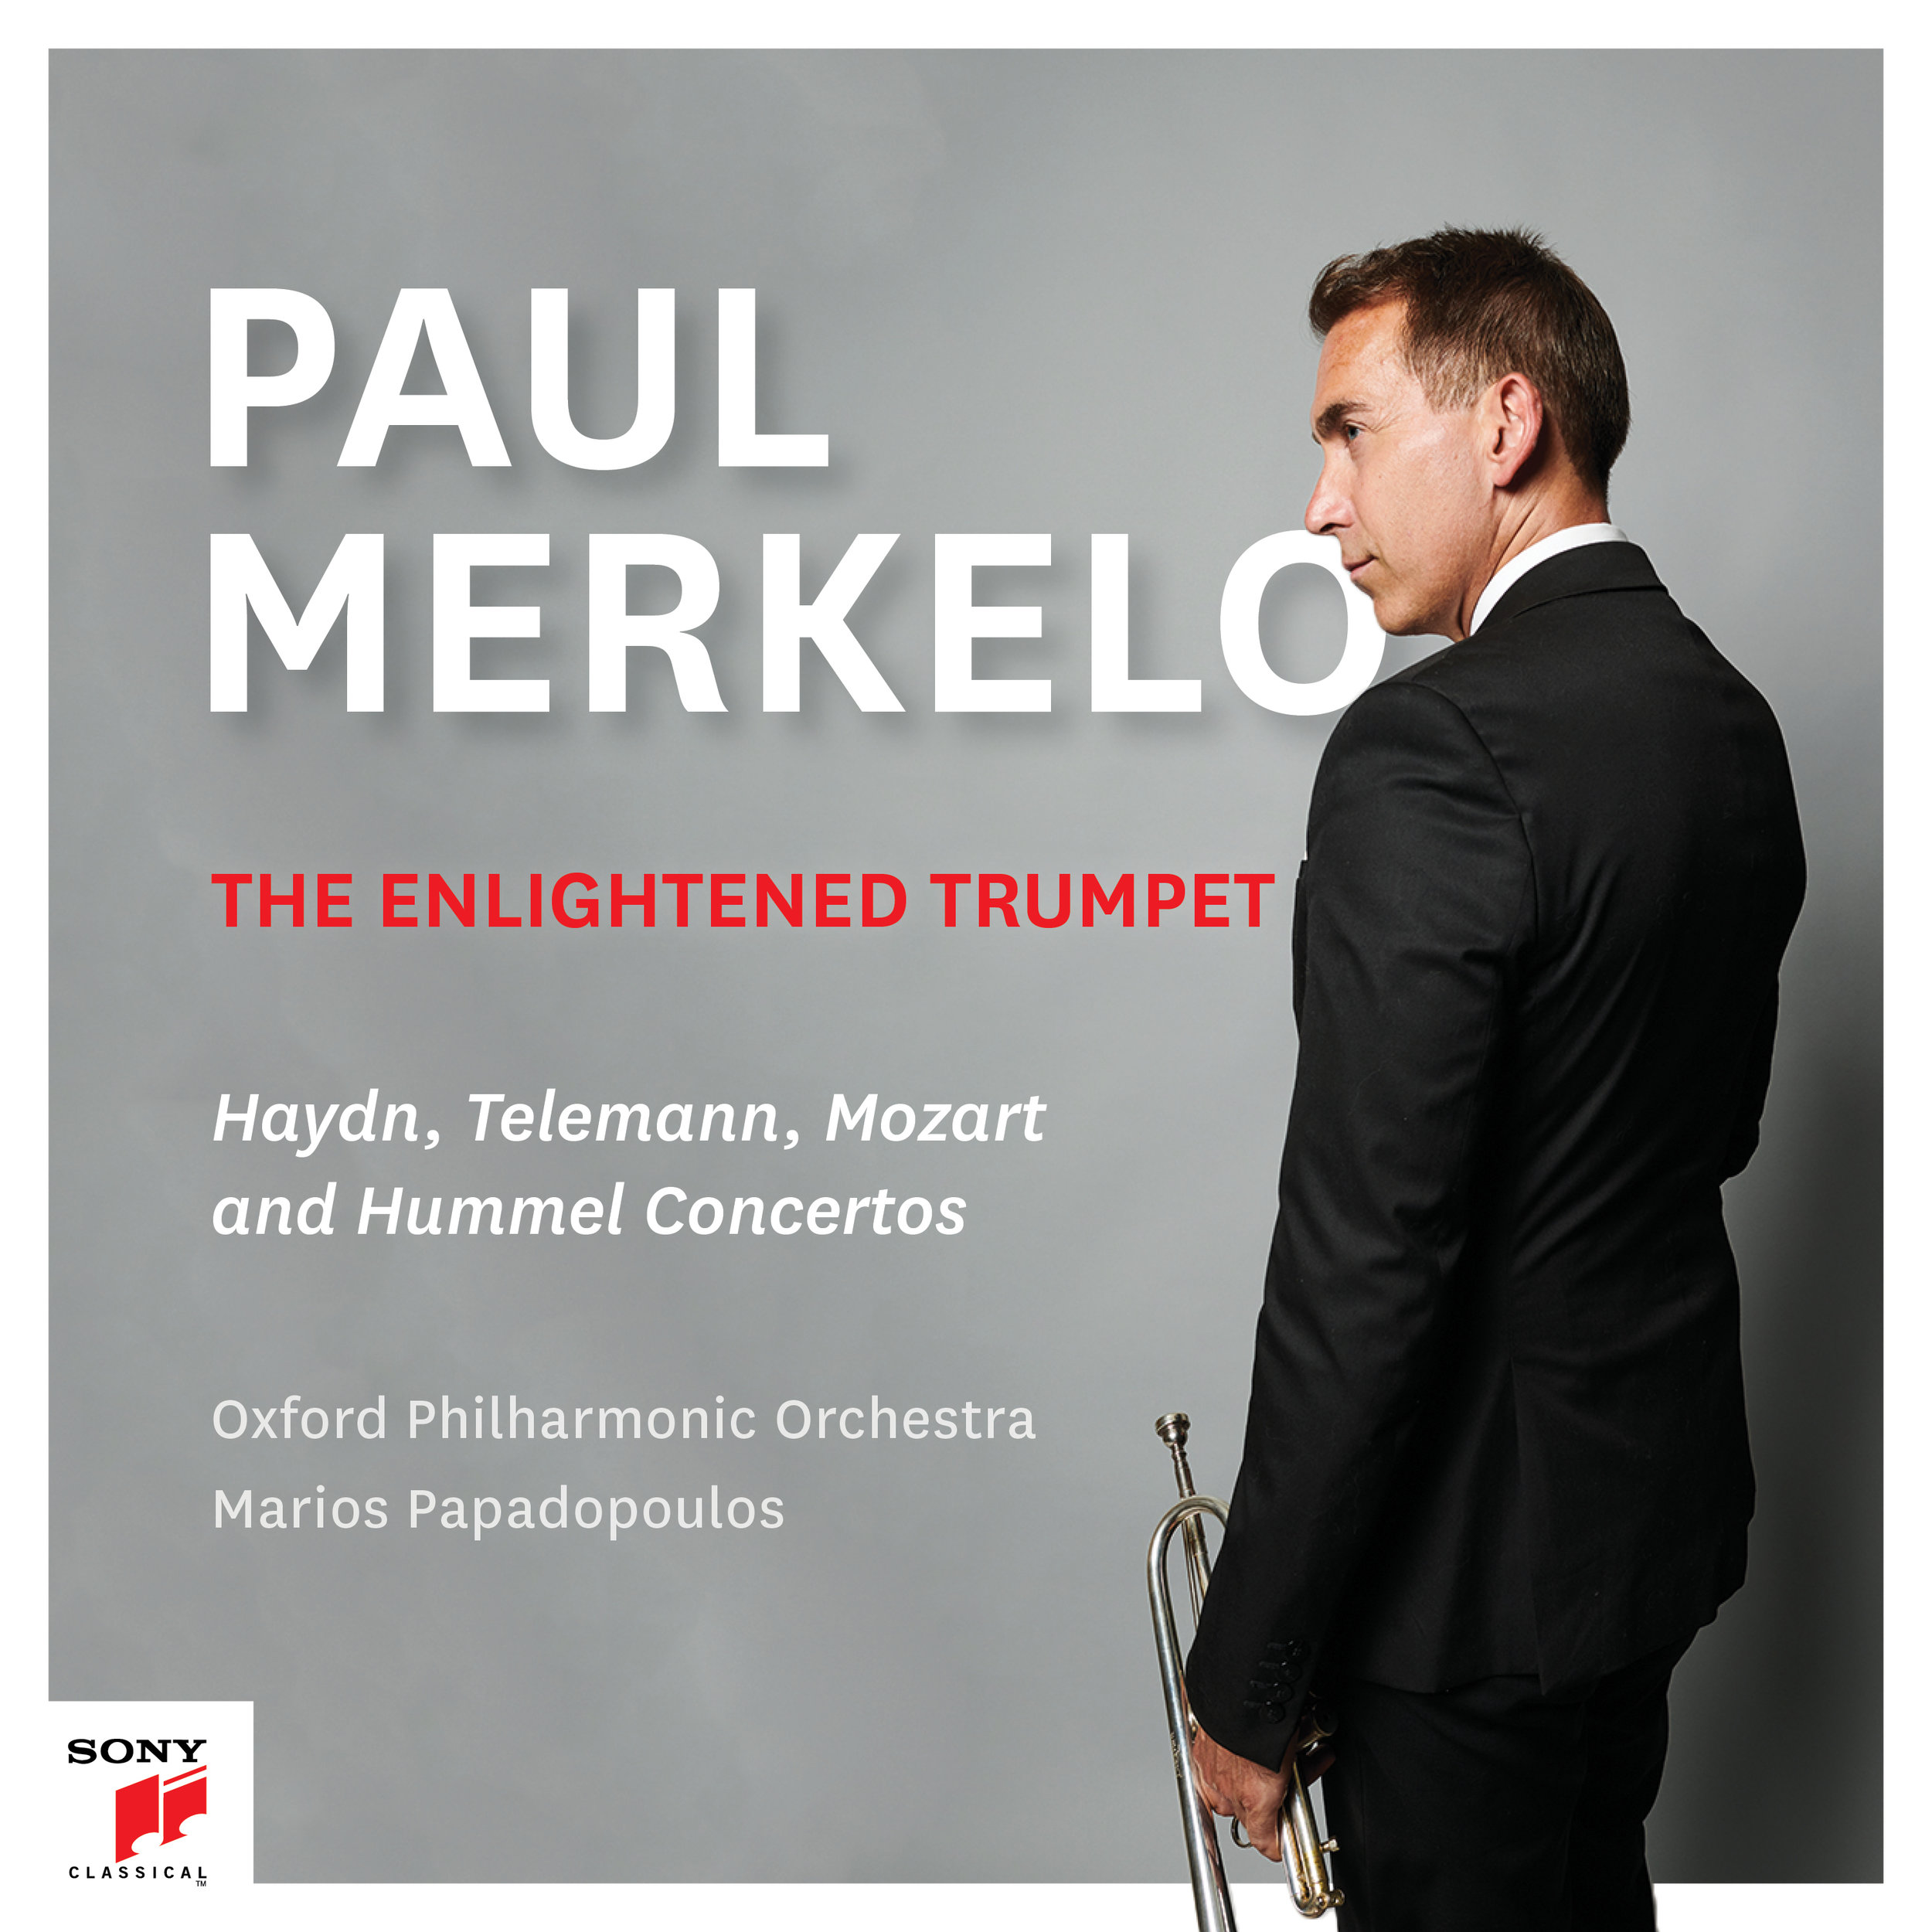 Paul Merkelo_Cover_3000x3000px.jpg